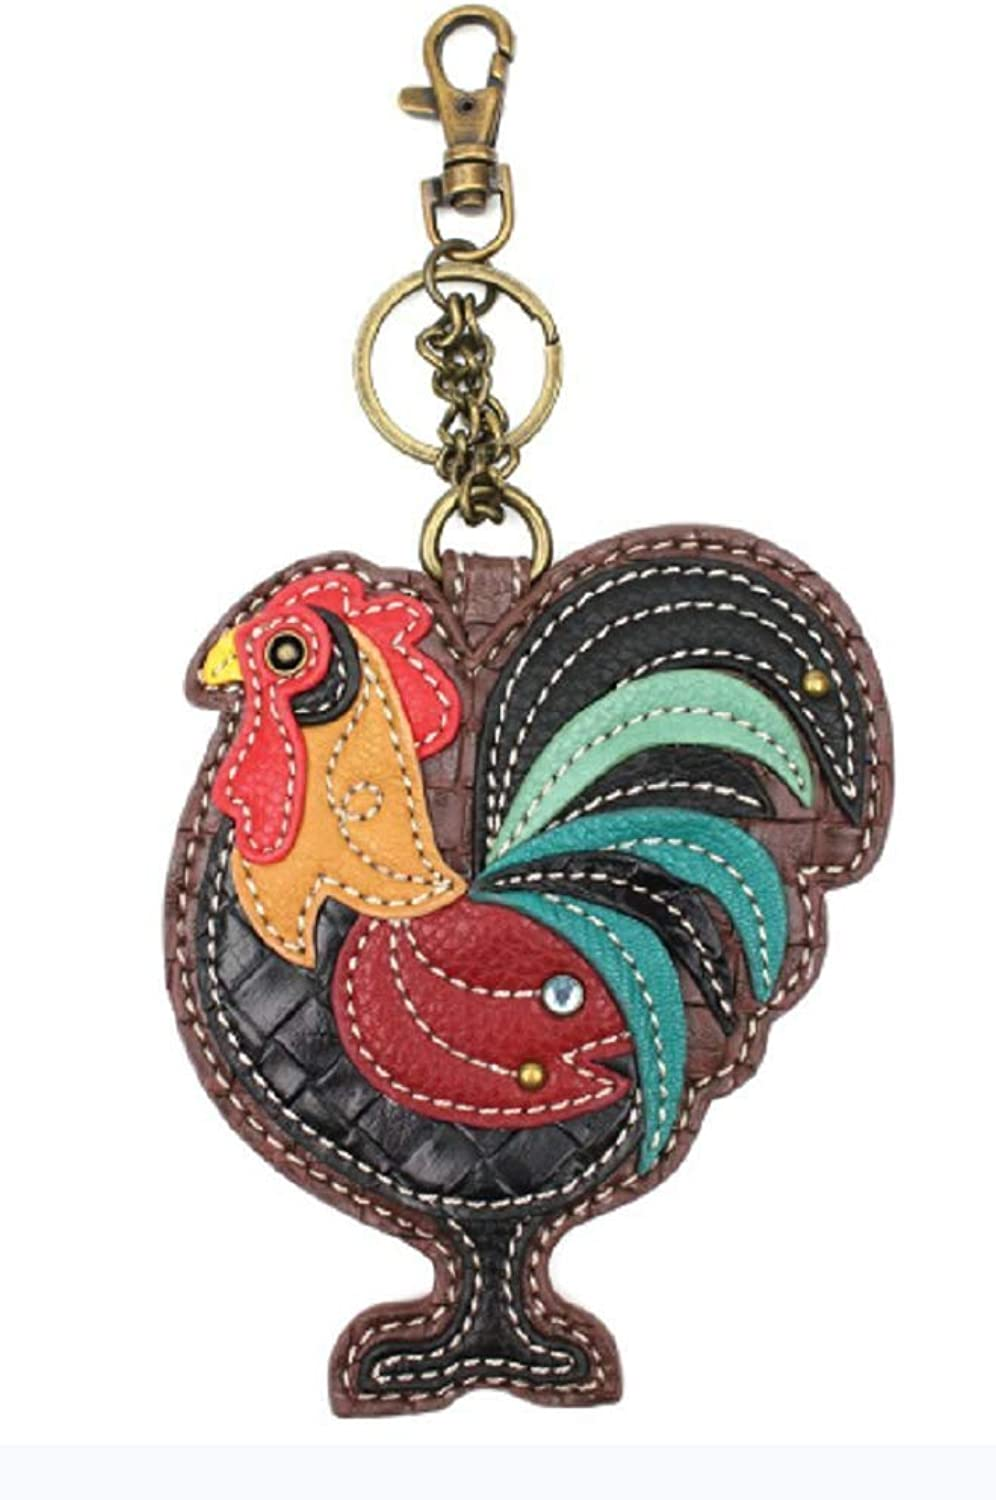 Chala Proud Rooster Whimsical Key Chain Coin Purse Bag Fob Charm